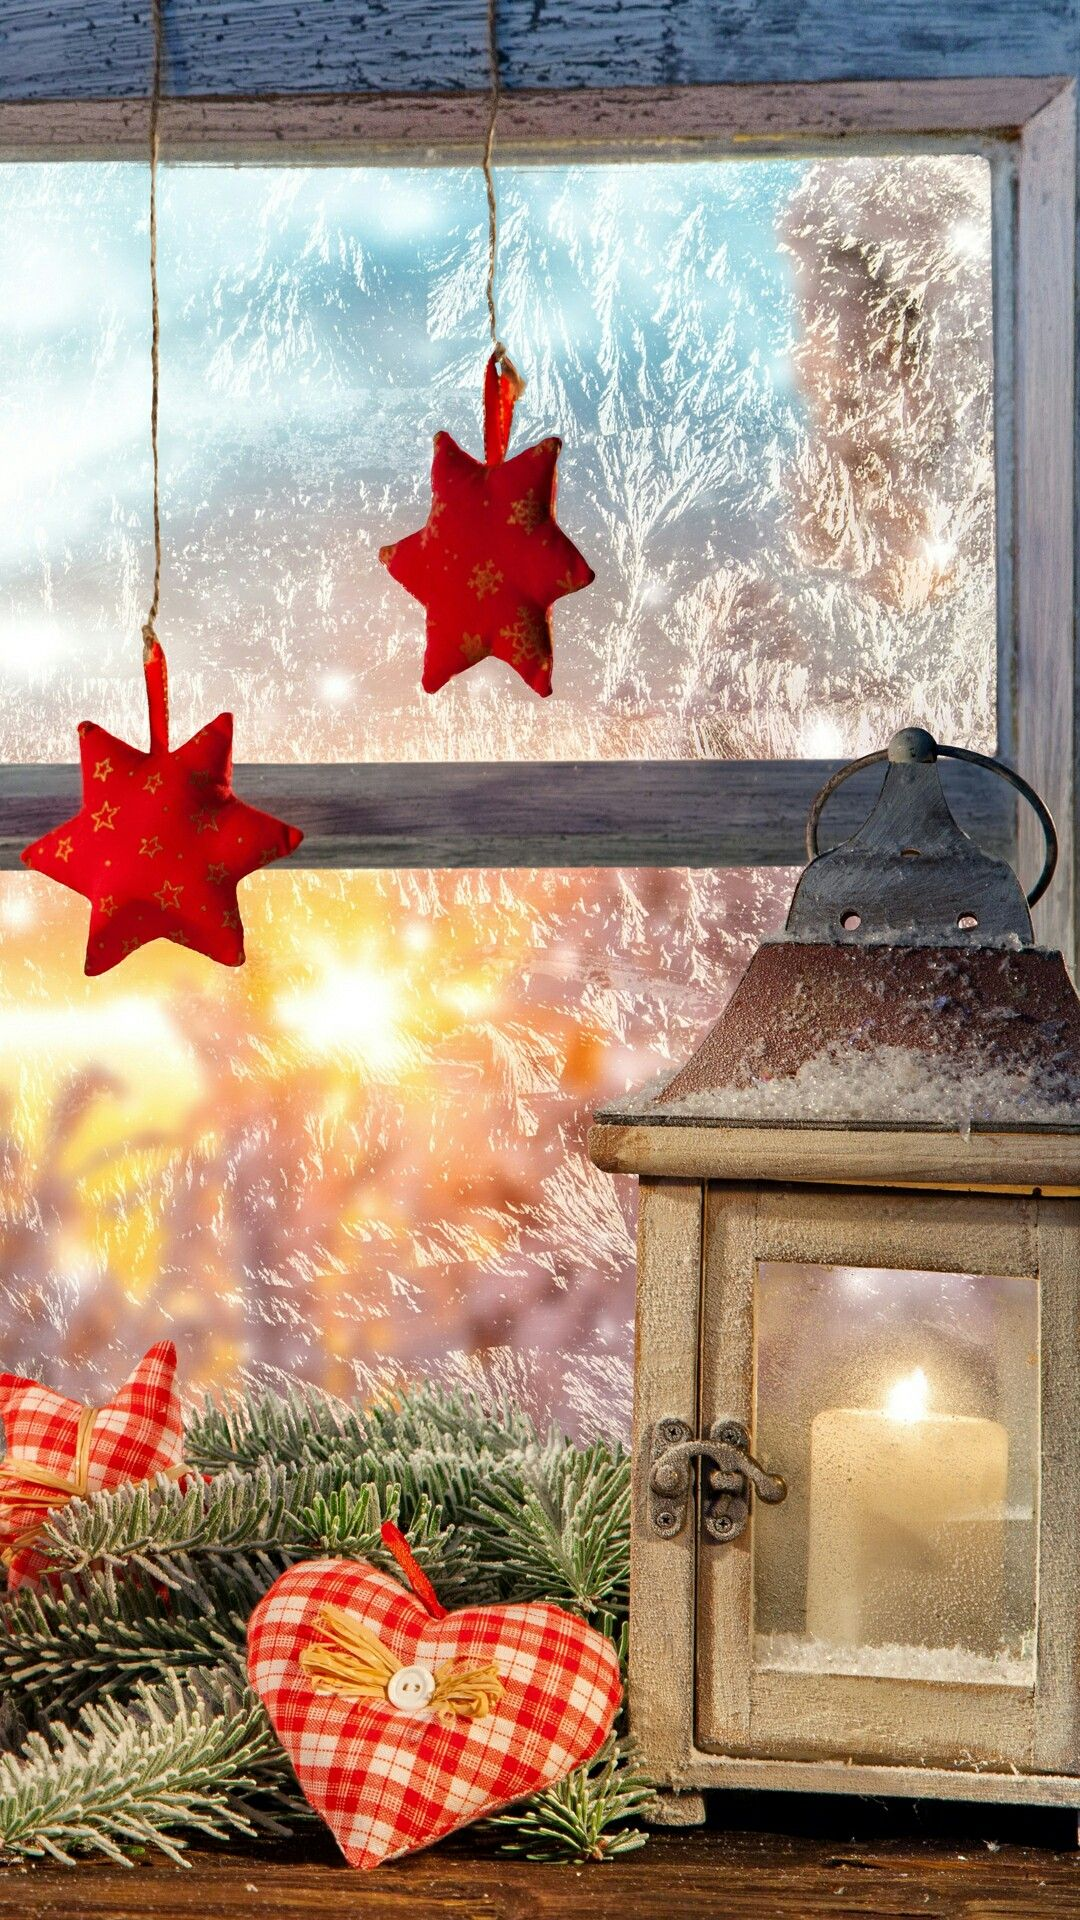 Winter Christmas Country Vignette Featuring A Lantern At A Frost Covered Window